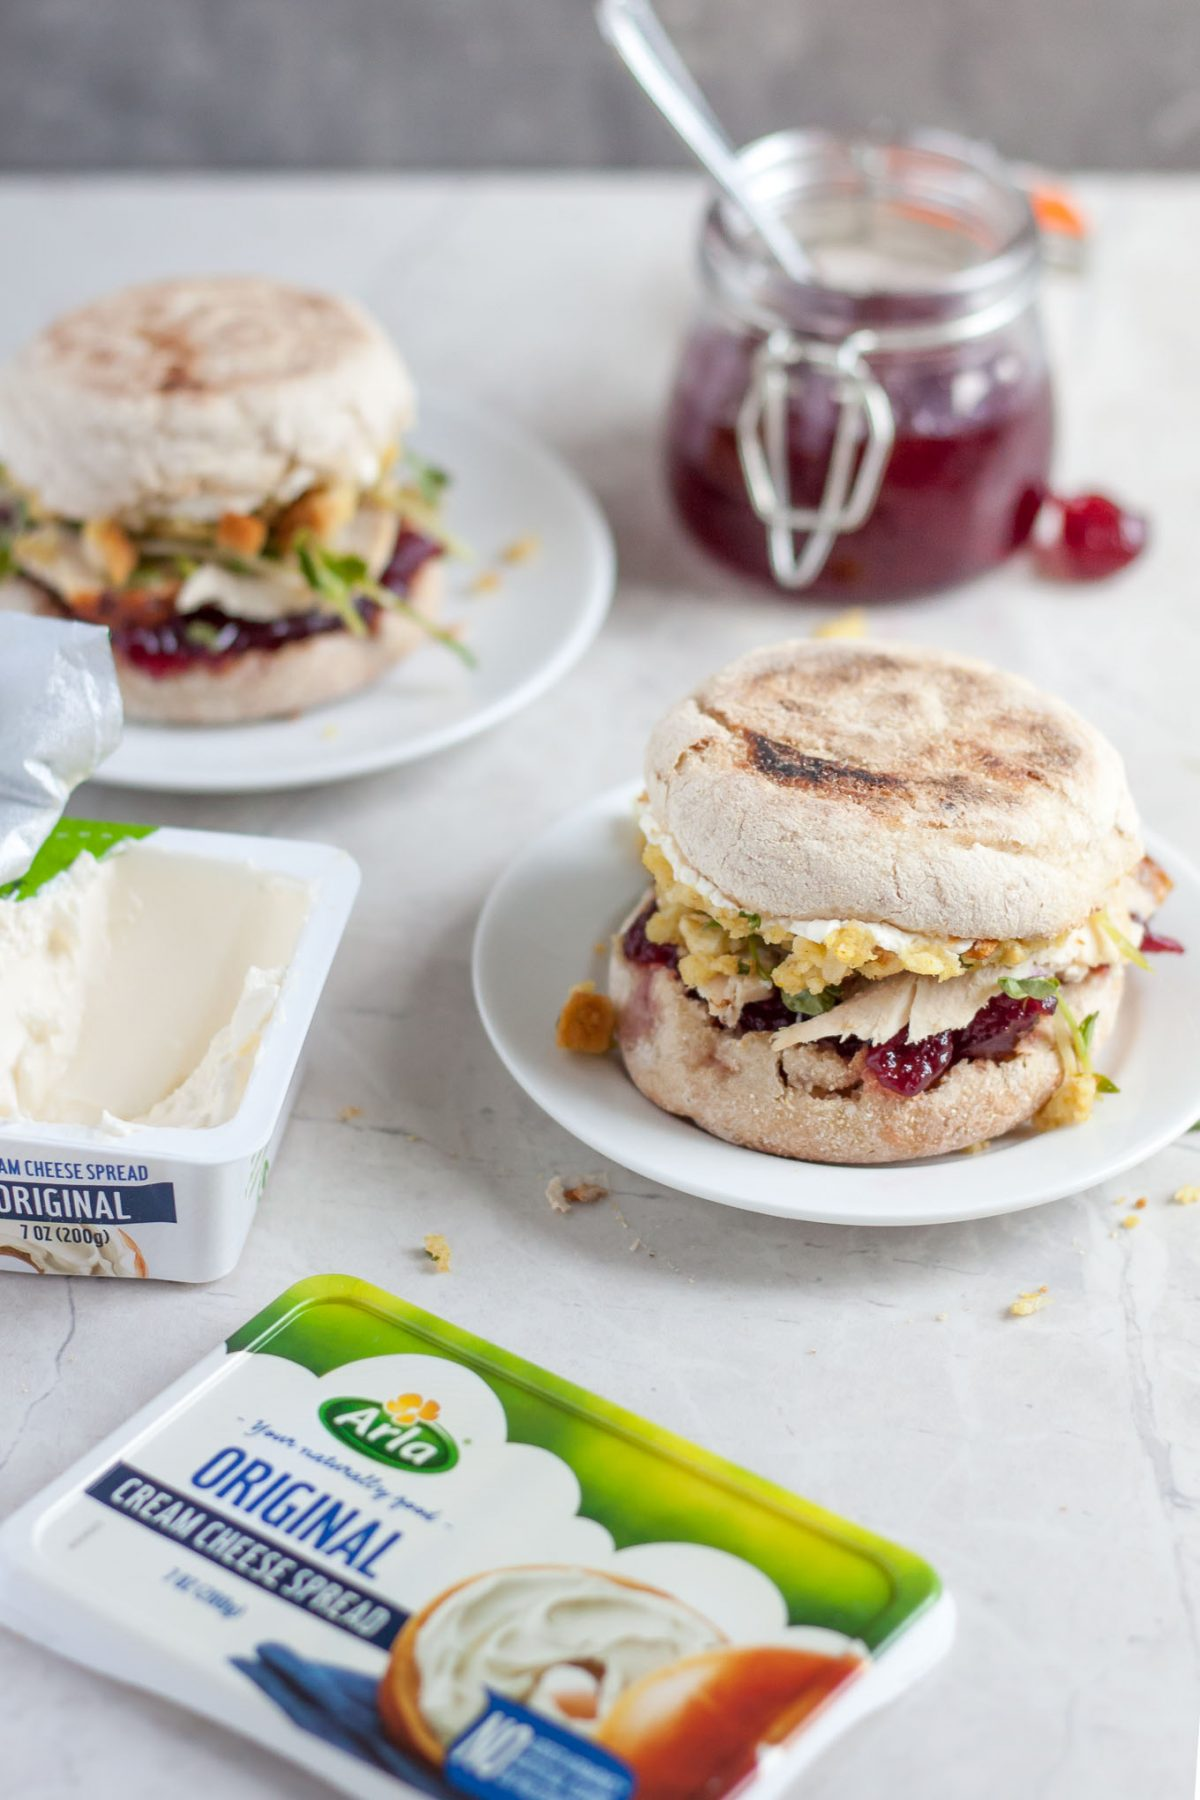 Lighter Thanksgiving Leftover Sandwich with Turkey, Stuffing, and Cranberry Sauce Recipe